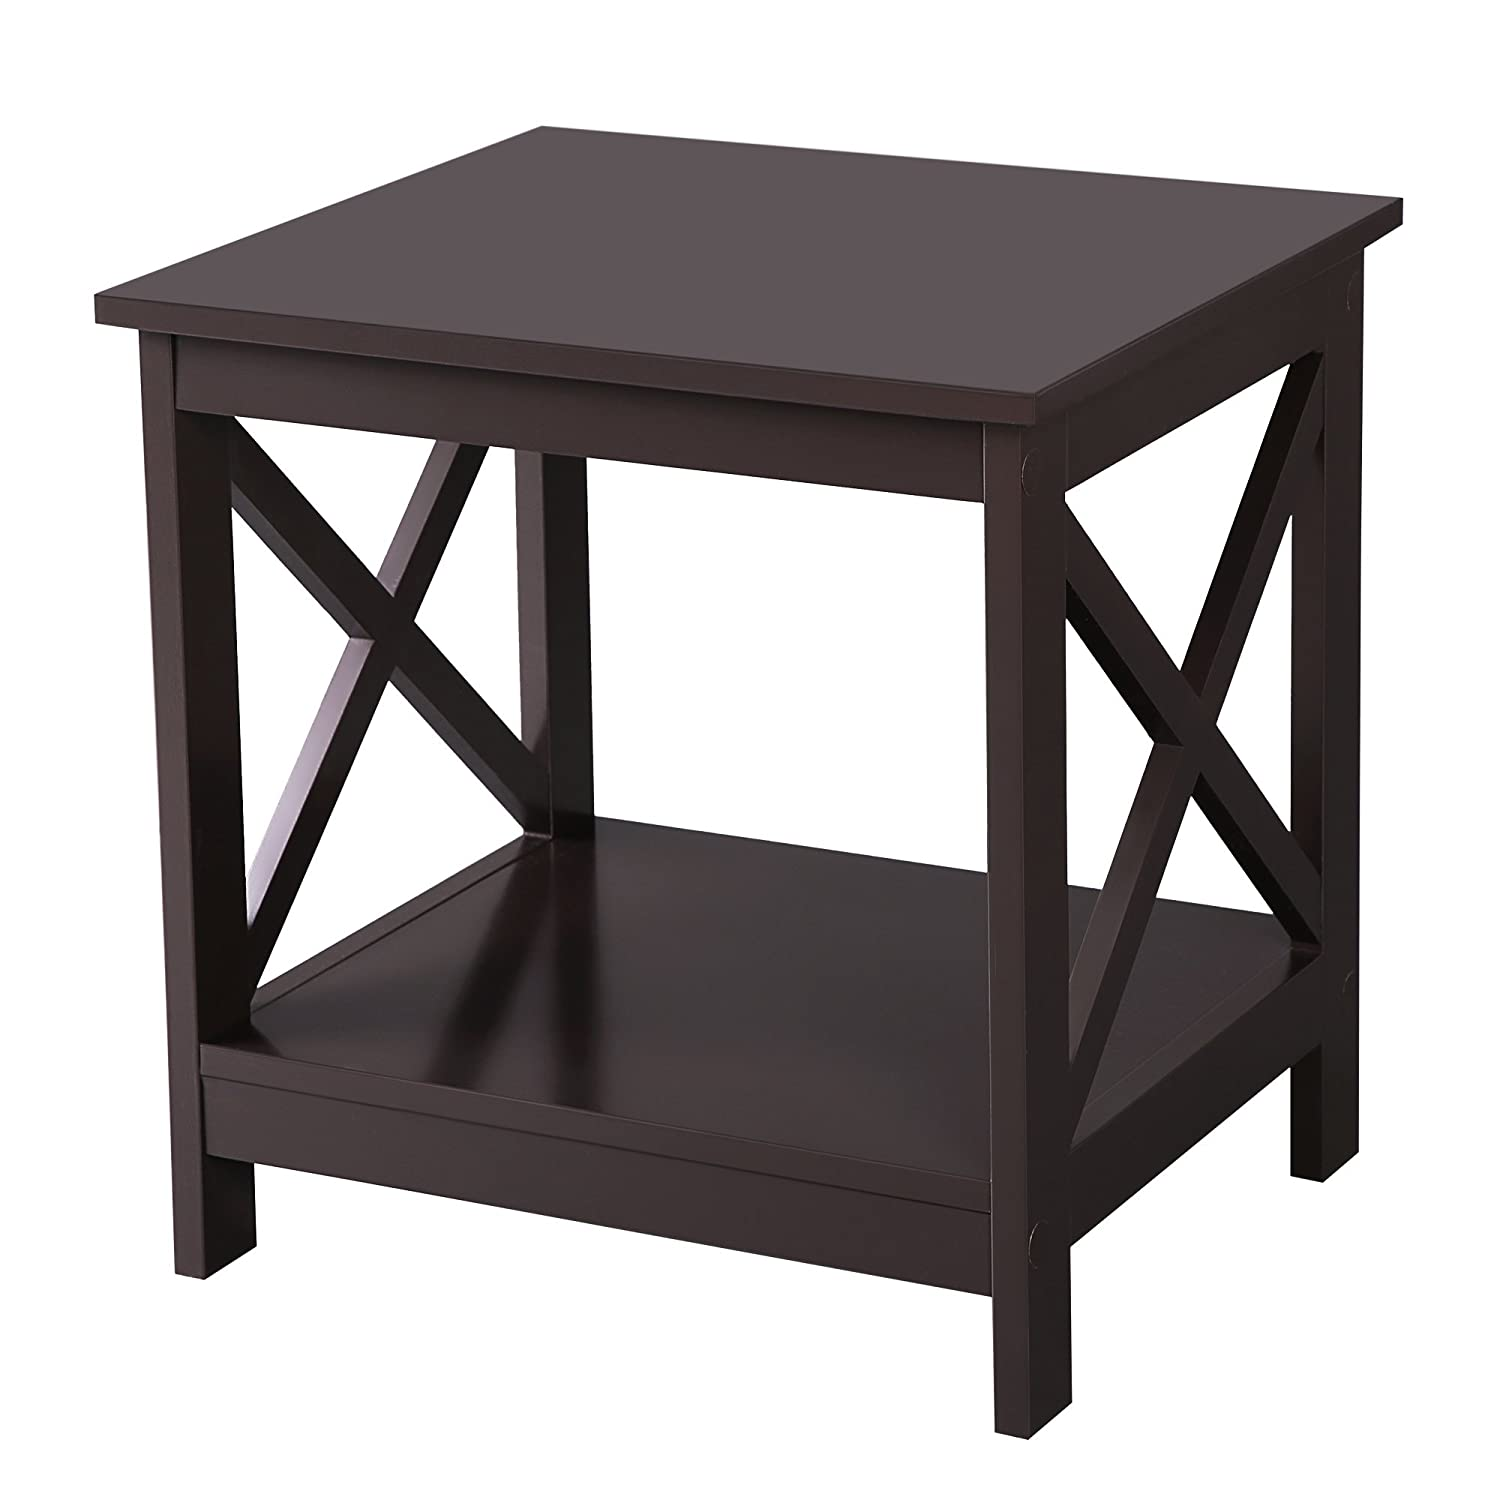 tables for the living room. SONGMICS X Design Sofa End Table Wooden Side Nightstand with 2  Display Shelves for Living Room Tables Amazon com